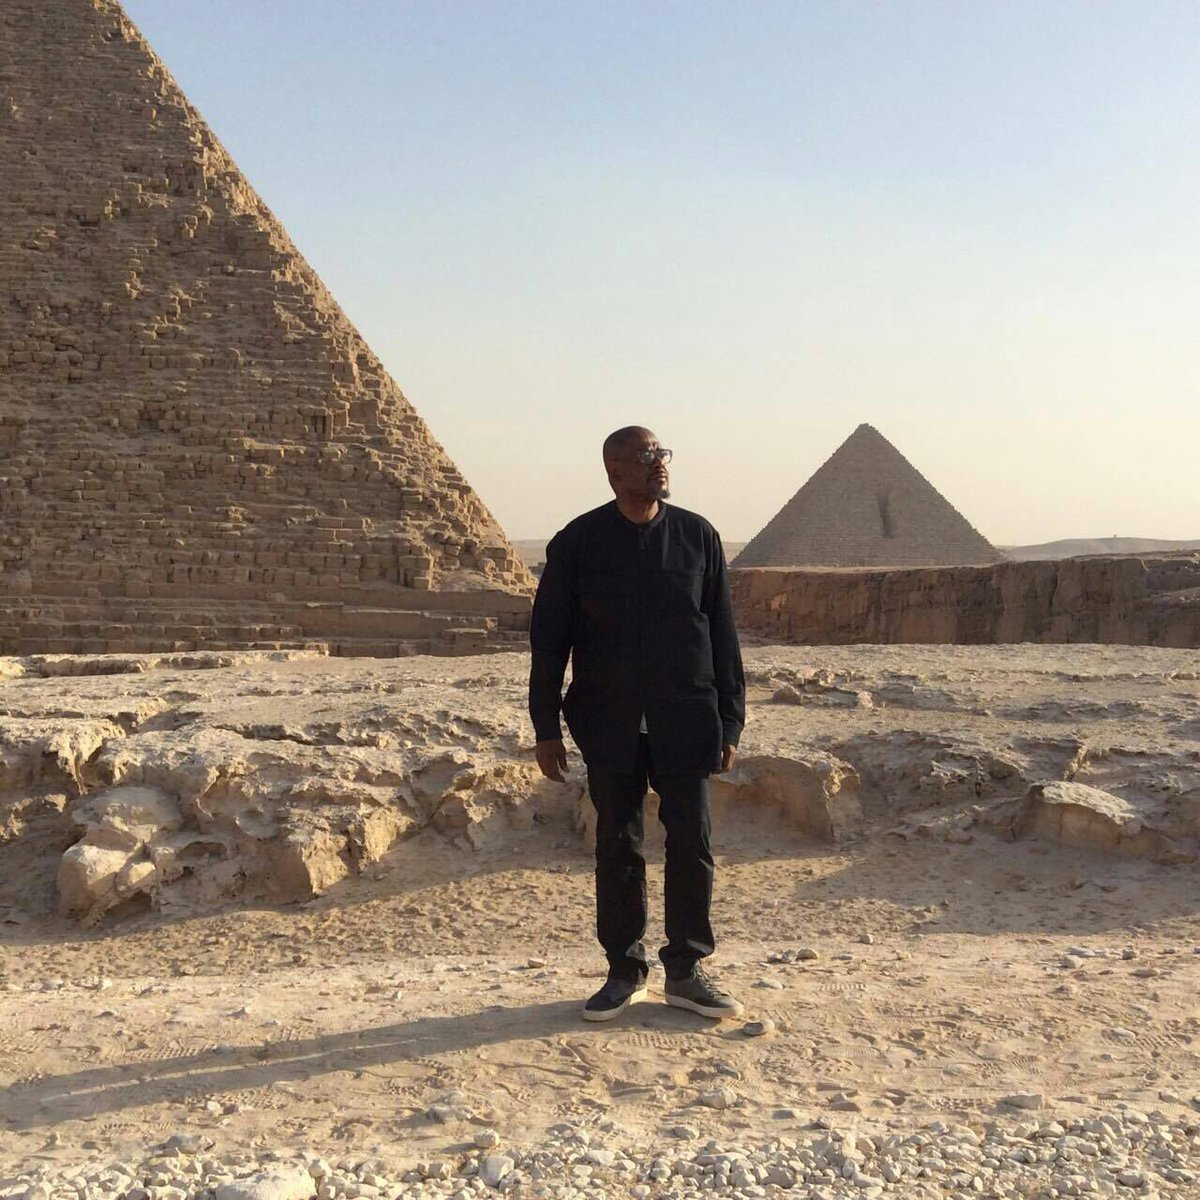 Such an inspiring moment today at the pyramids in Cairo #Egypt https://t.co/TwrkUs6WCN